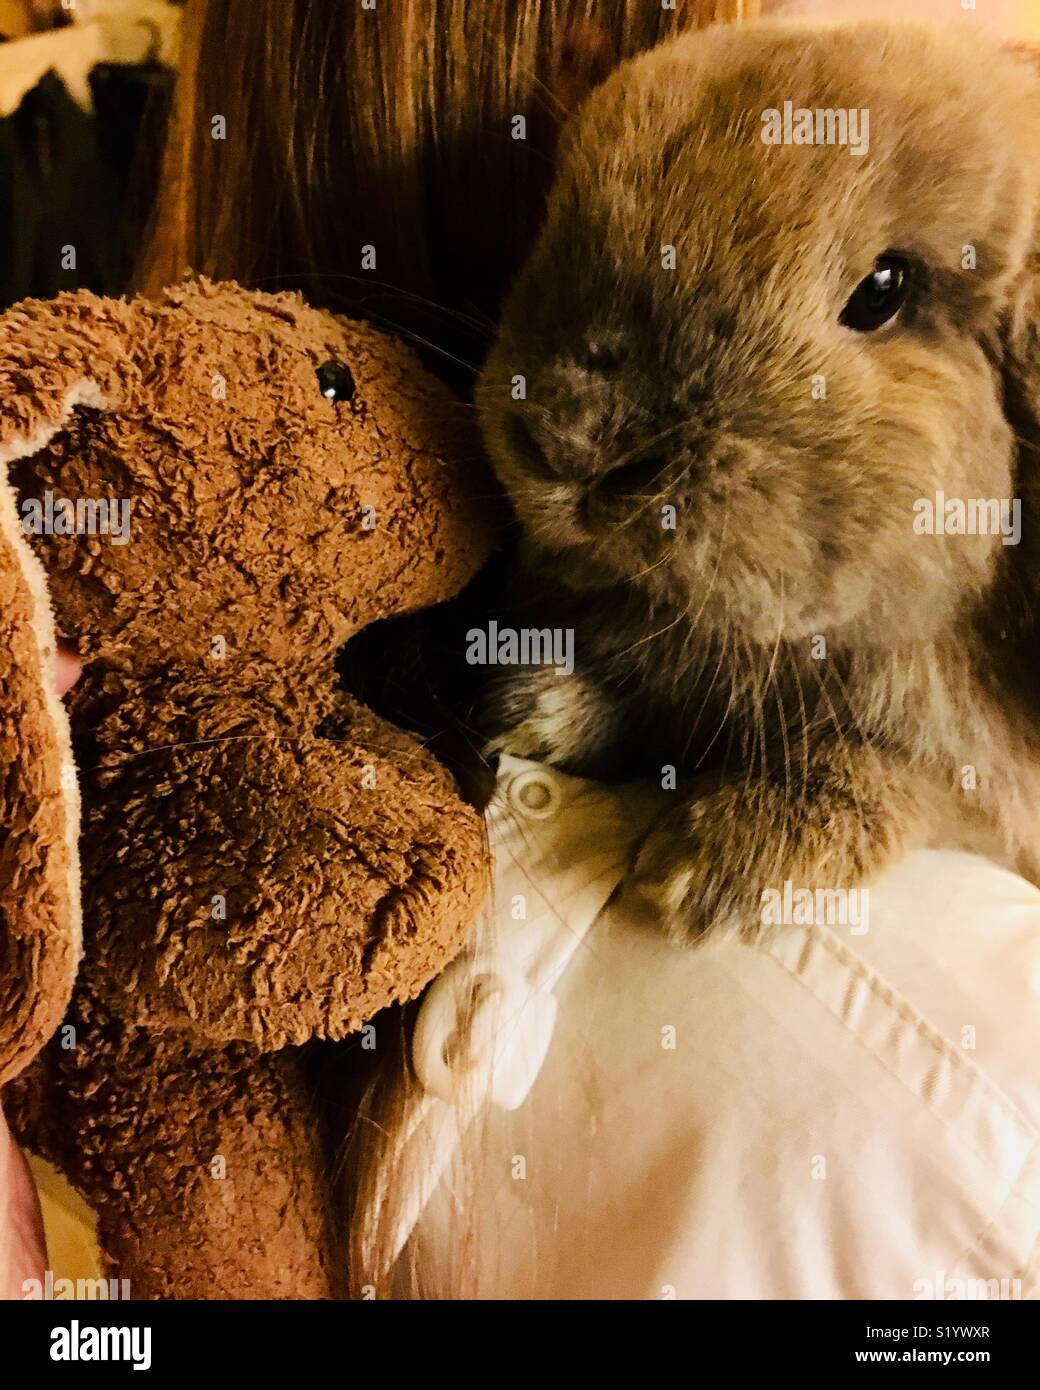 474fa36a476 Blue Tort Holland Lop dwarf rabbit being introduced to stuffed toy rabbit -  Stock Image